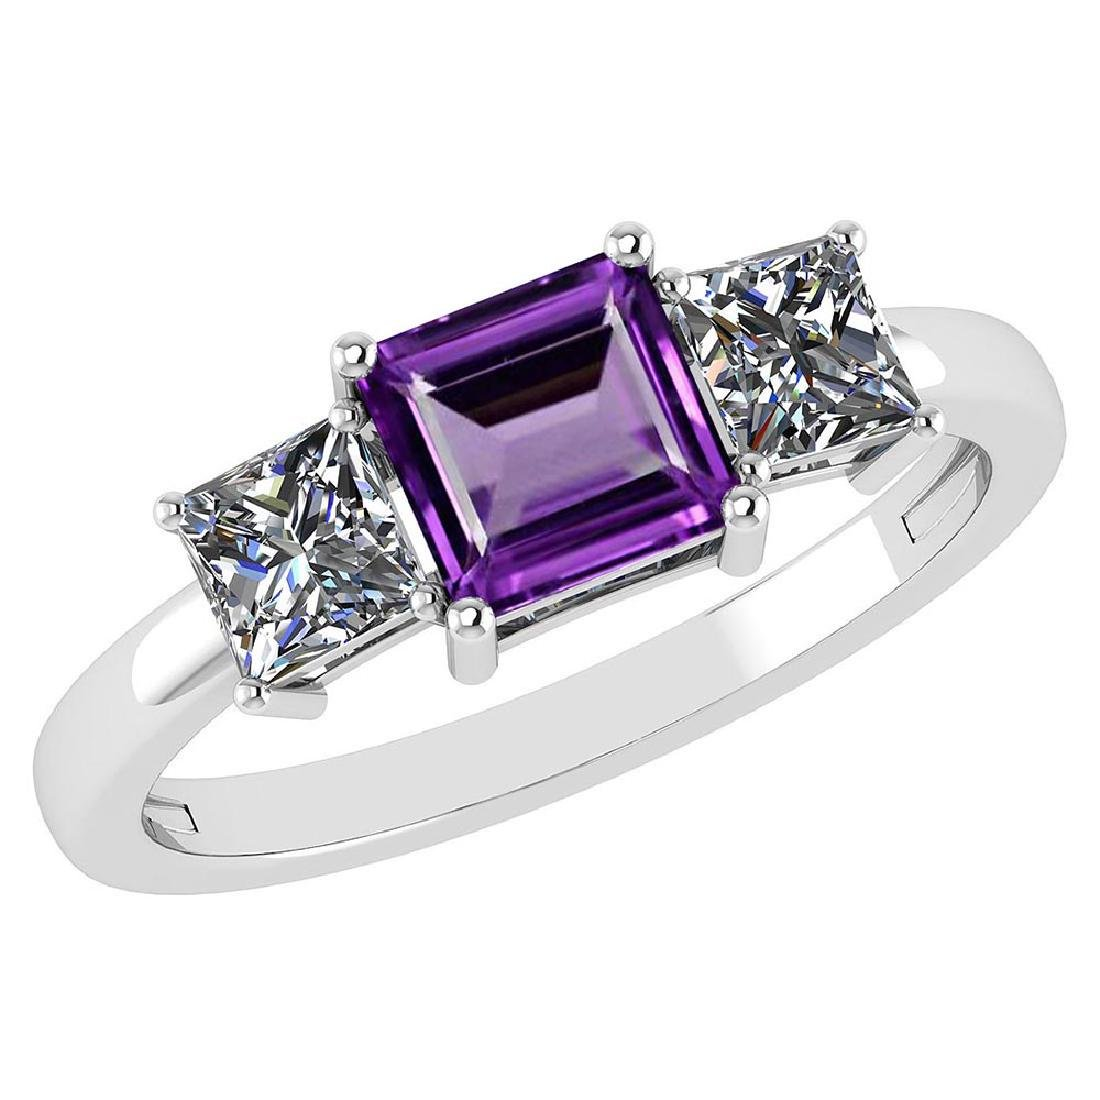 Certified 1.26 Ctw Amethyst And Diamond 14k White Gold